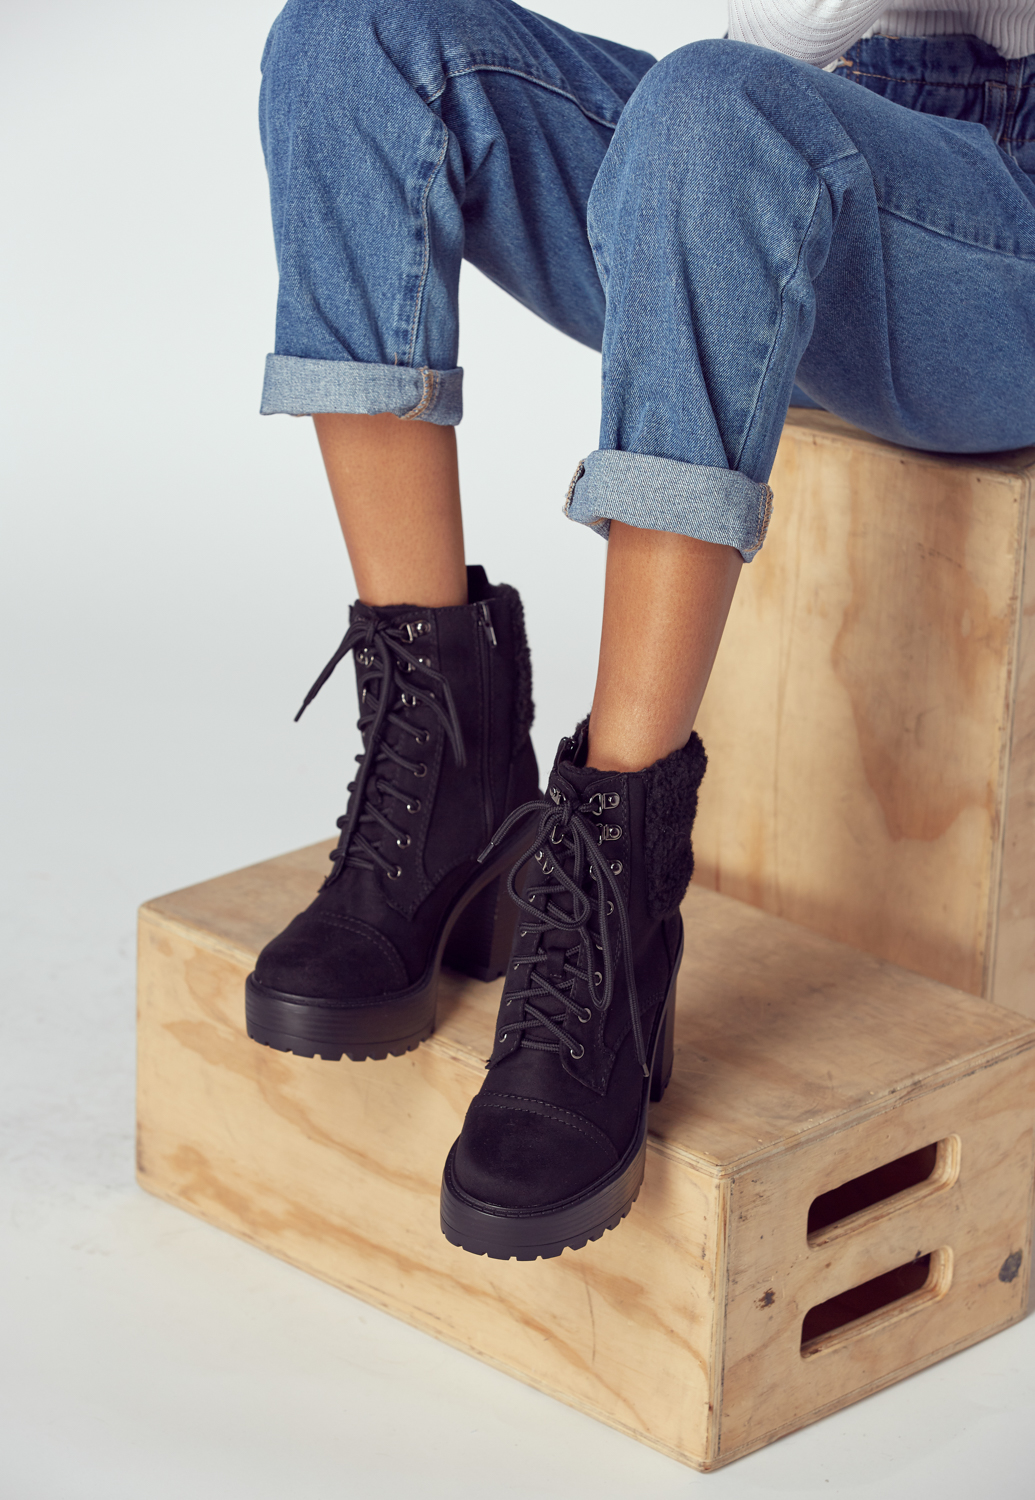 Shearling Lace-Up High Heel Boots